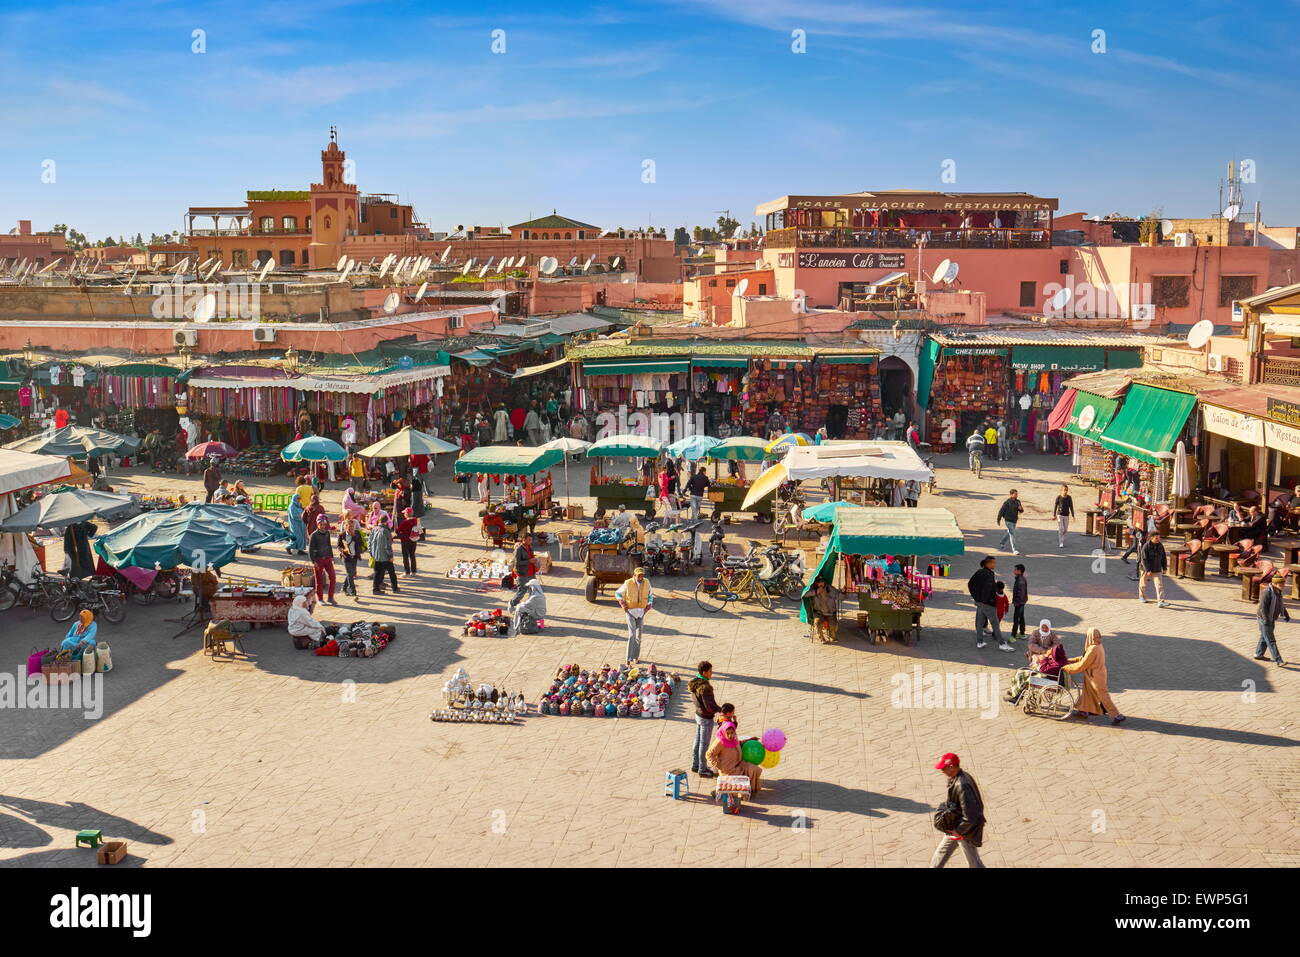 Marrakesh. Jemaa el Fna Square in the early afternoon. Morocco - Stock Image